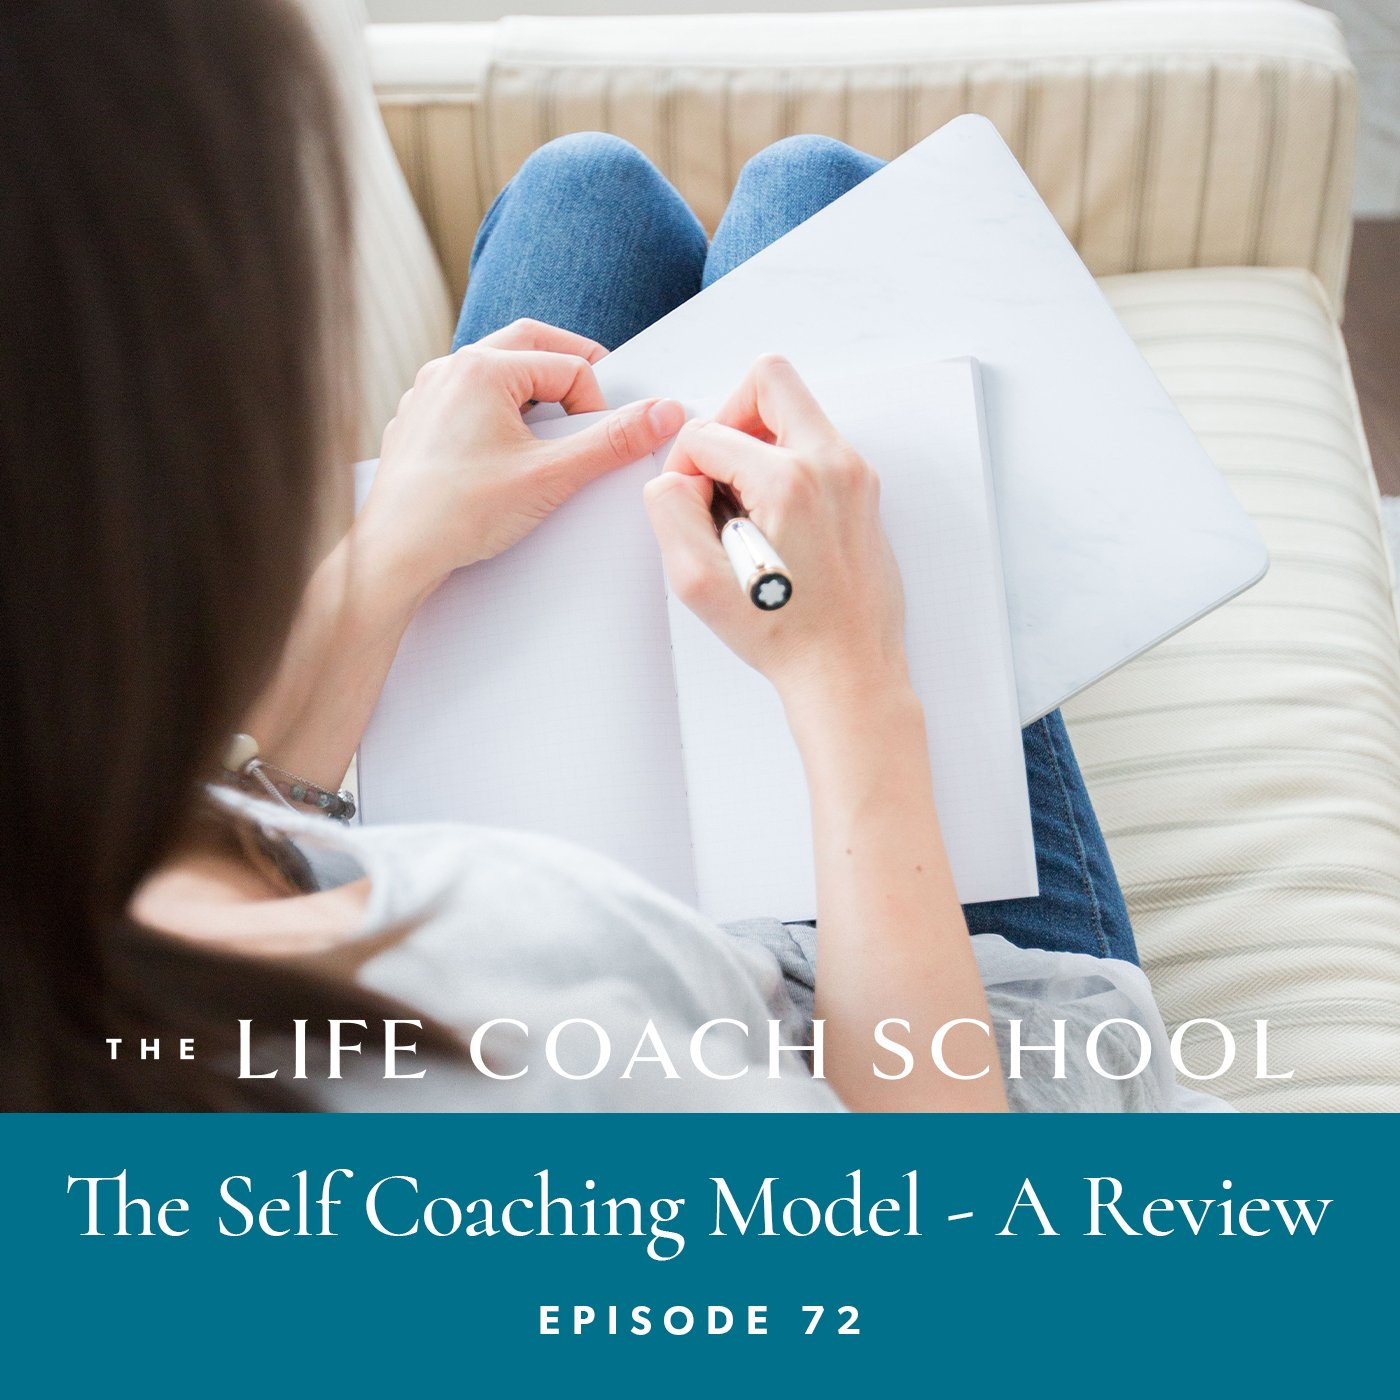 The Life Coach School Podcast with Brooke Castillo | Episode 72 | The Self Coaching Model - A Review